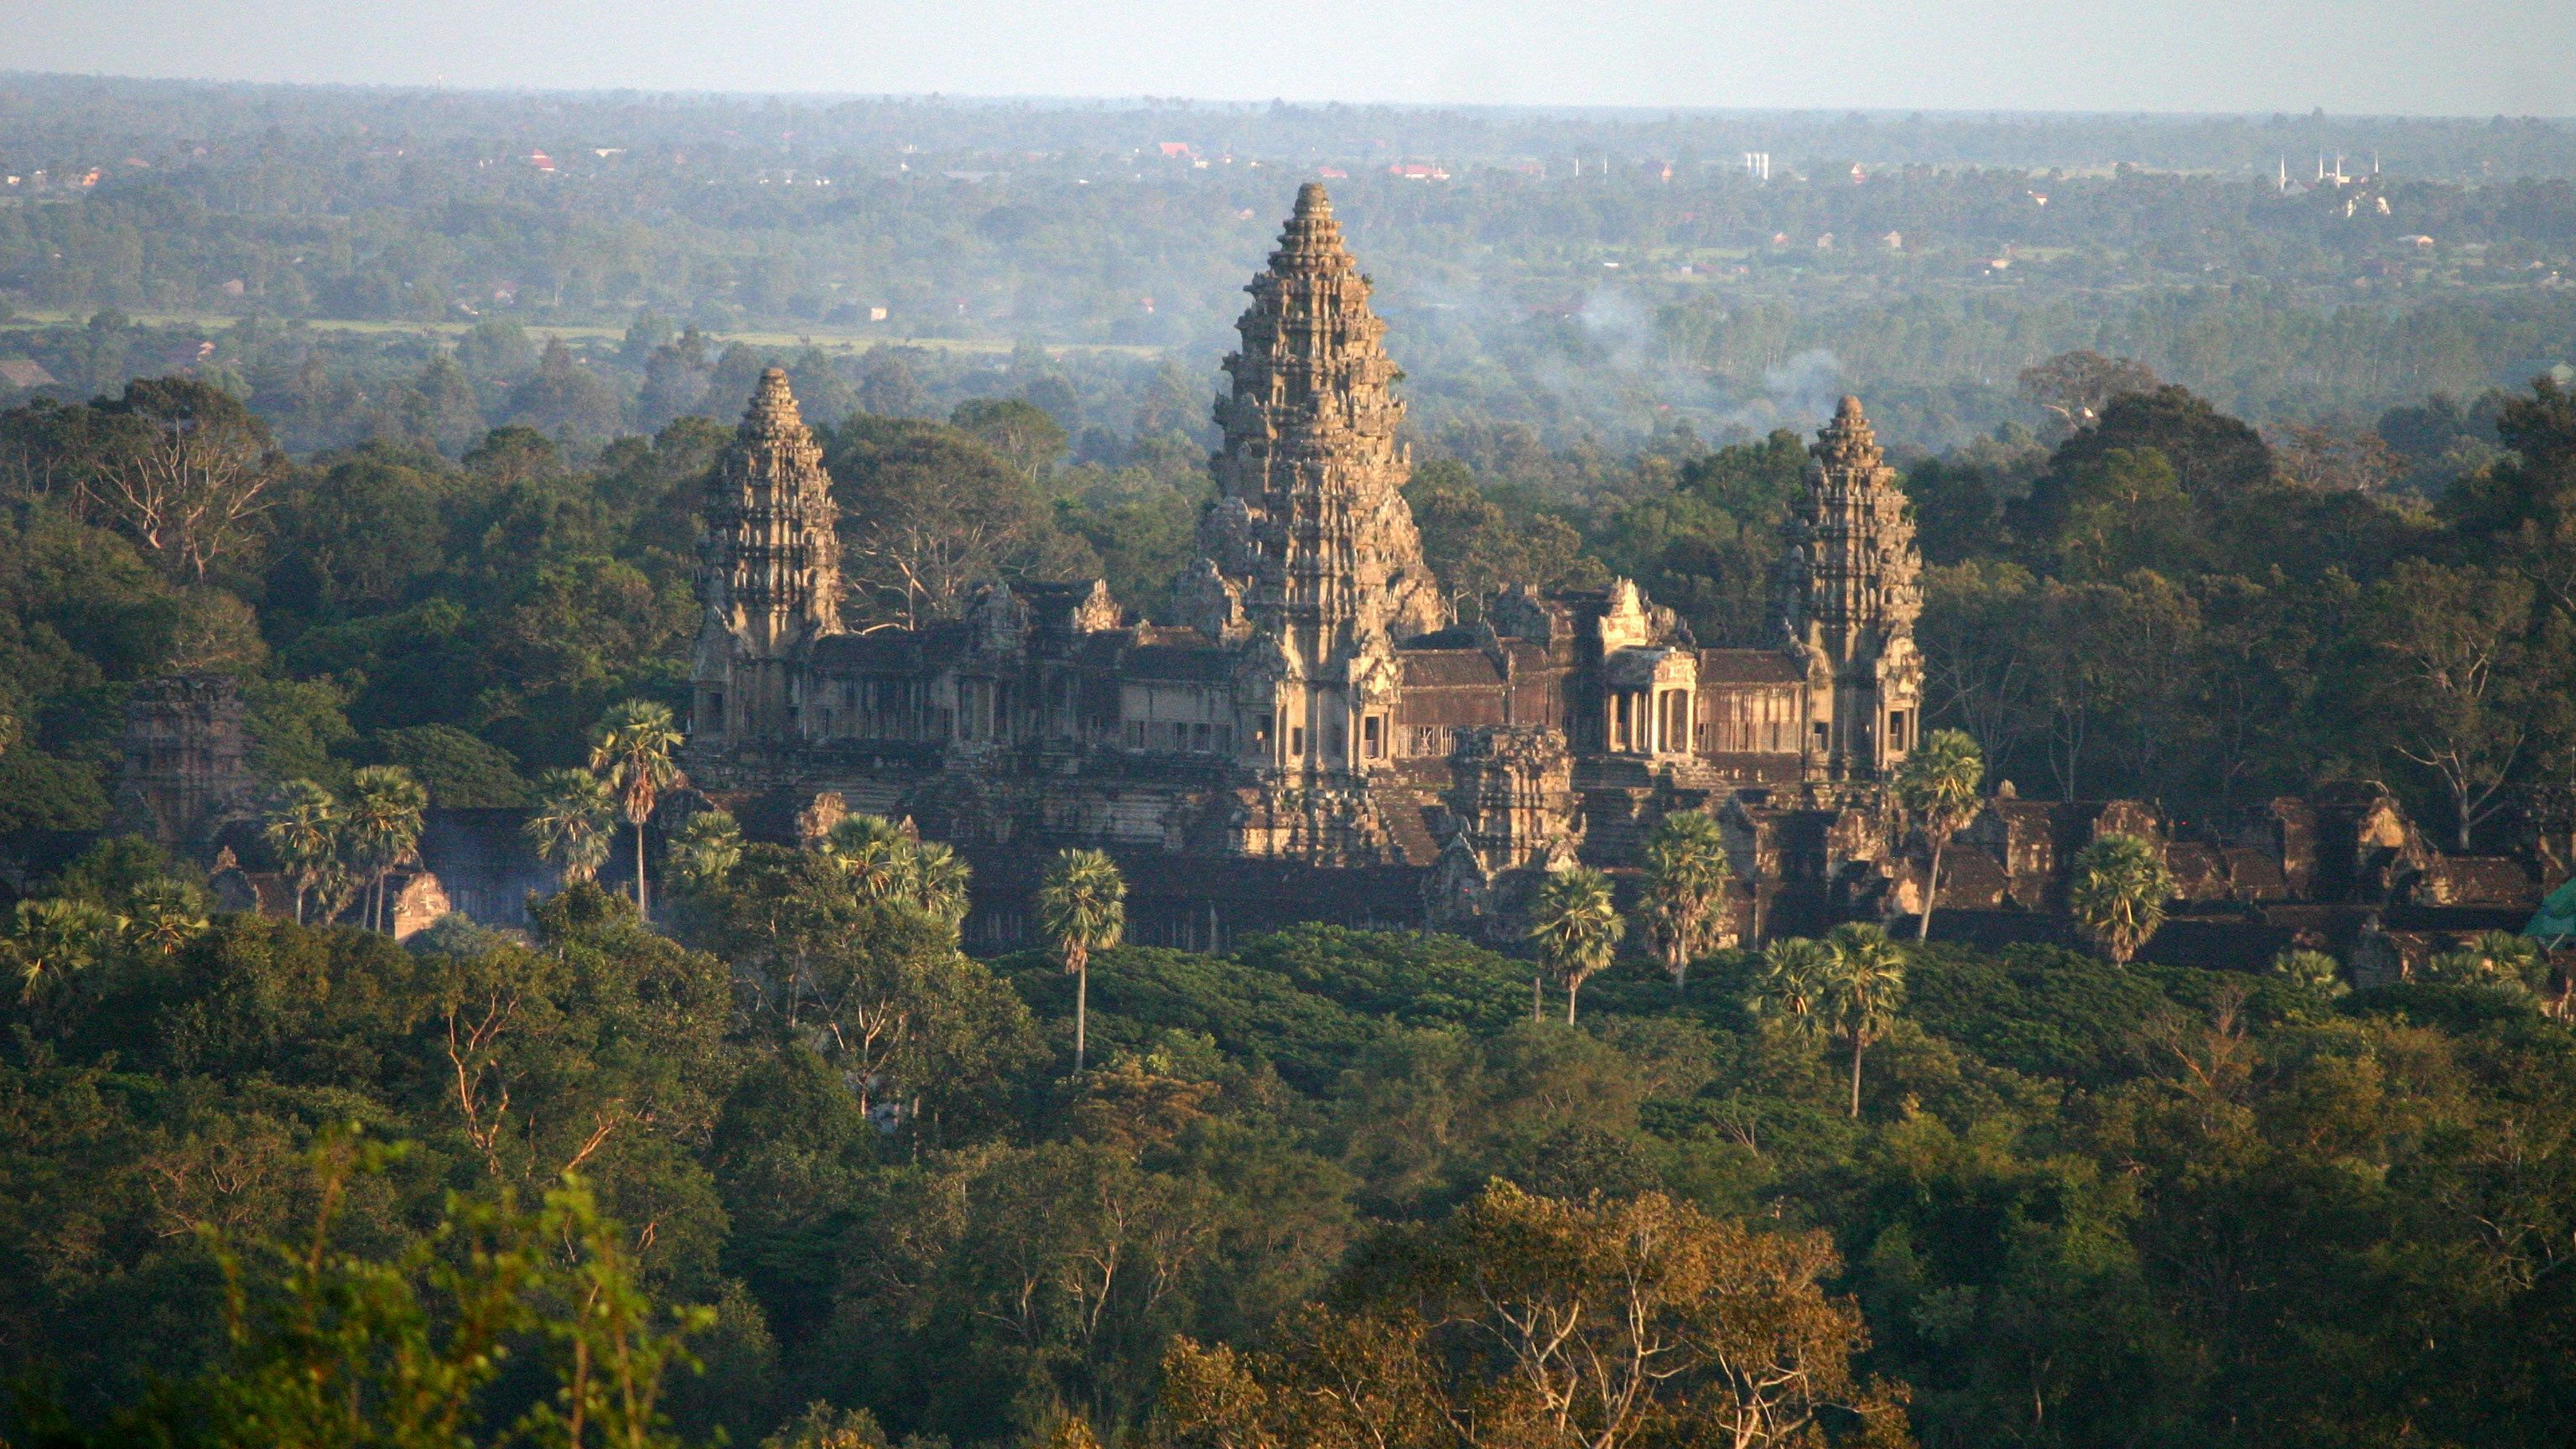 Aerial view of the ancient temples in Siem Reap